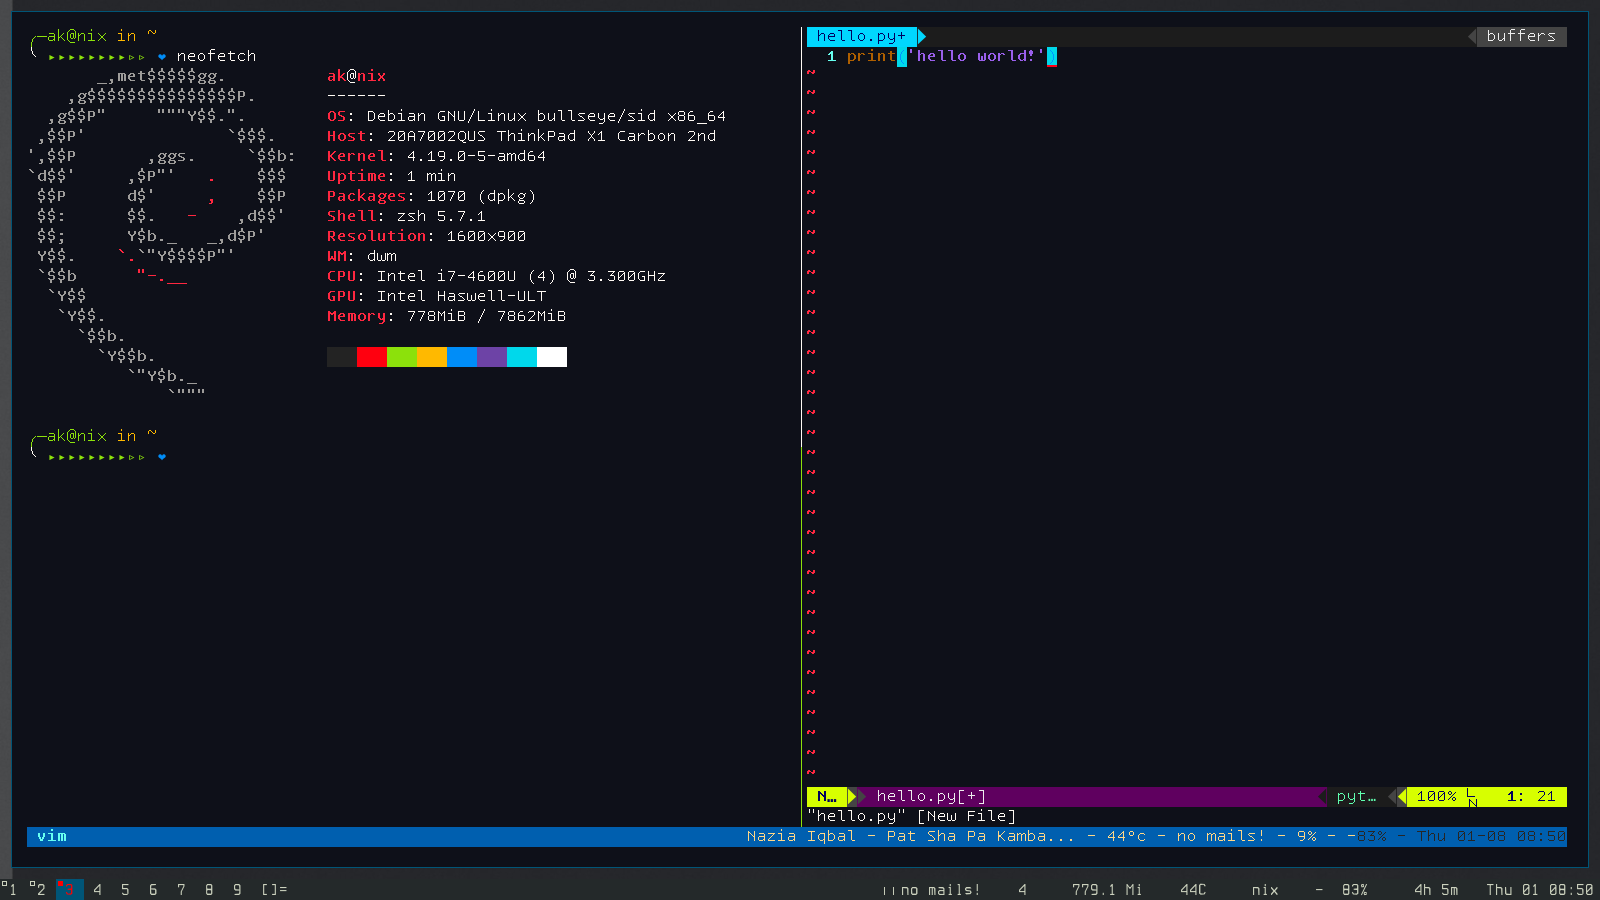 Archlinux] No powerline symbols in urxvt with tmux · Issue